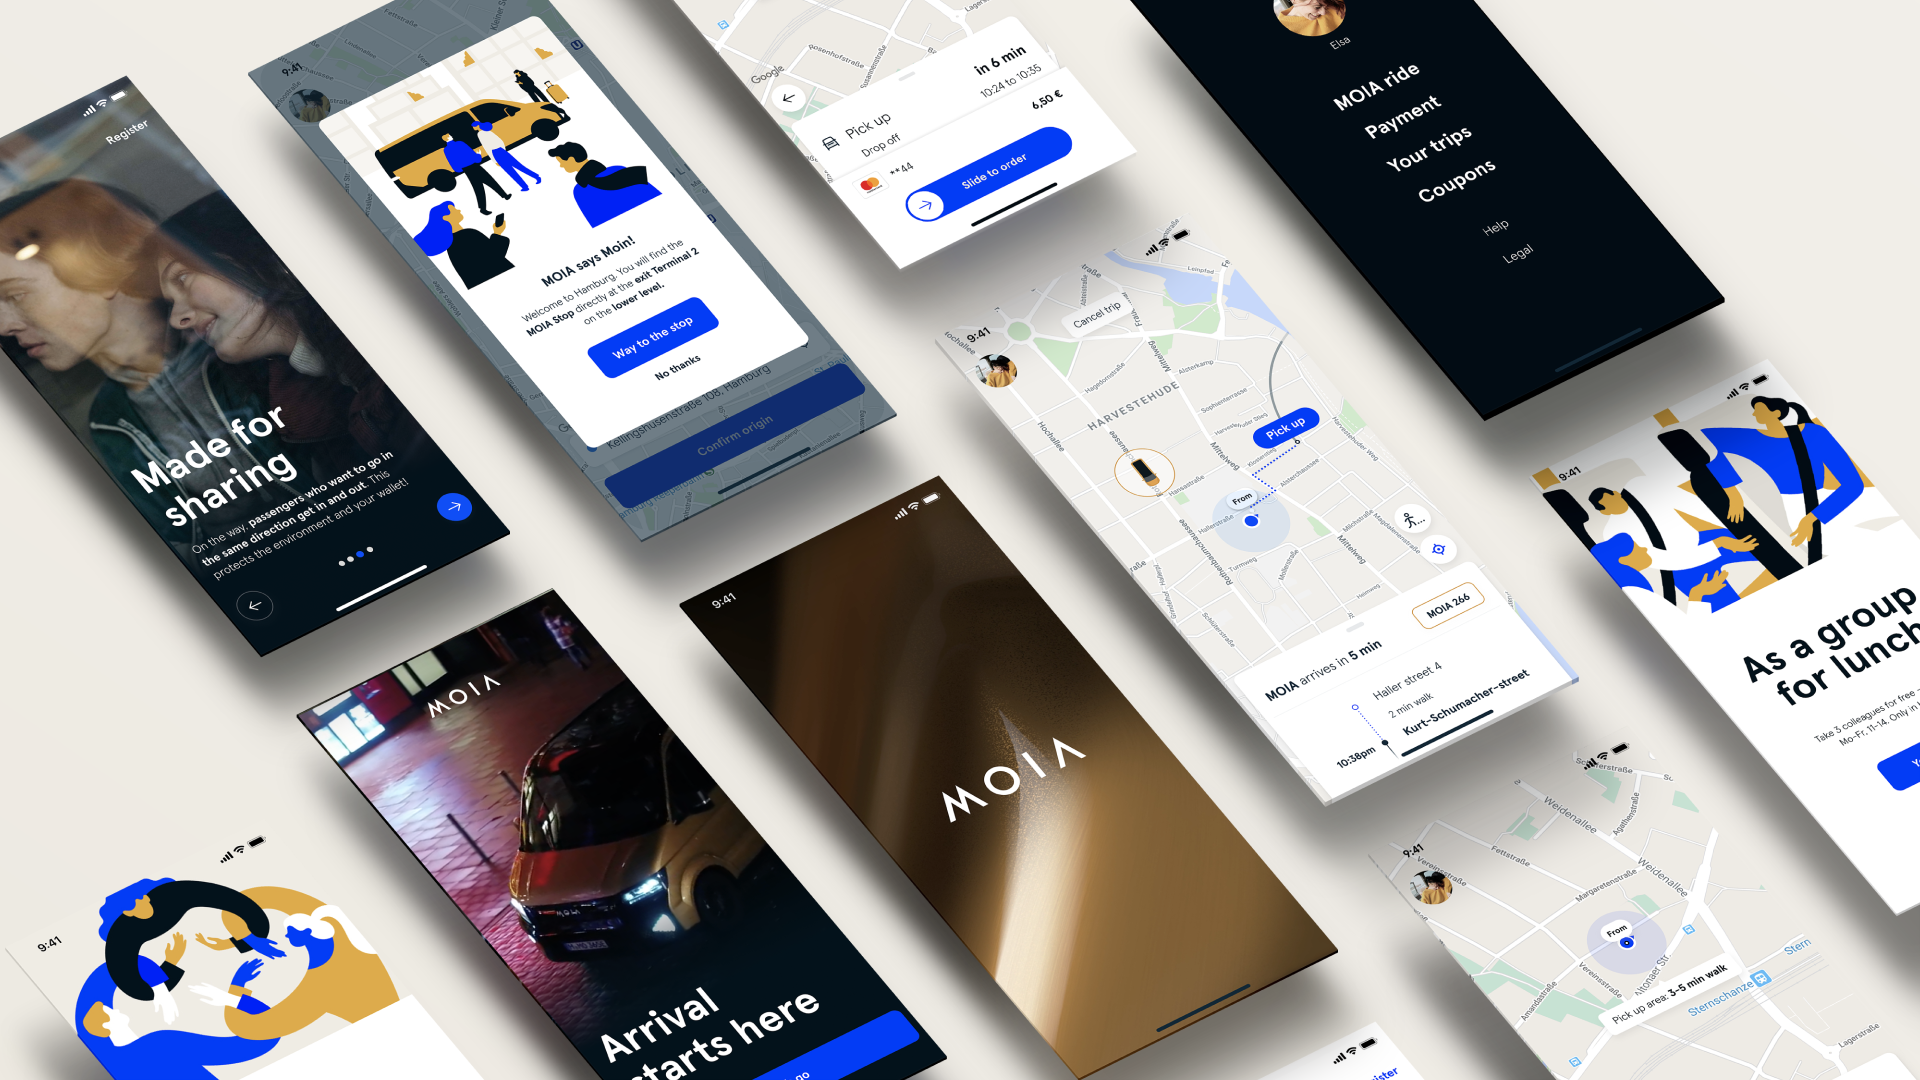 MOIA_App_Overview